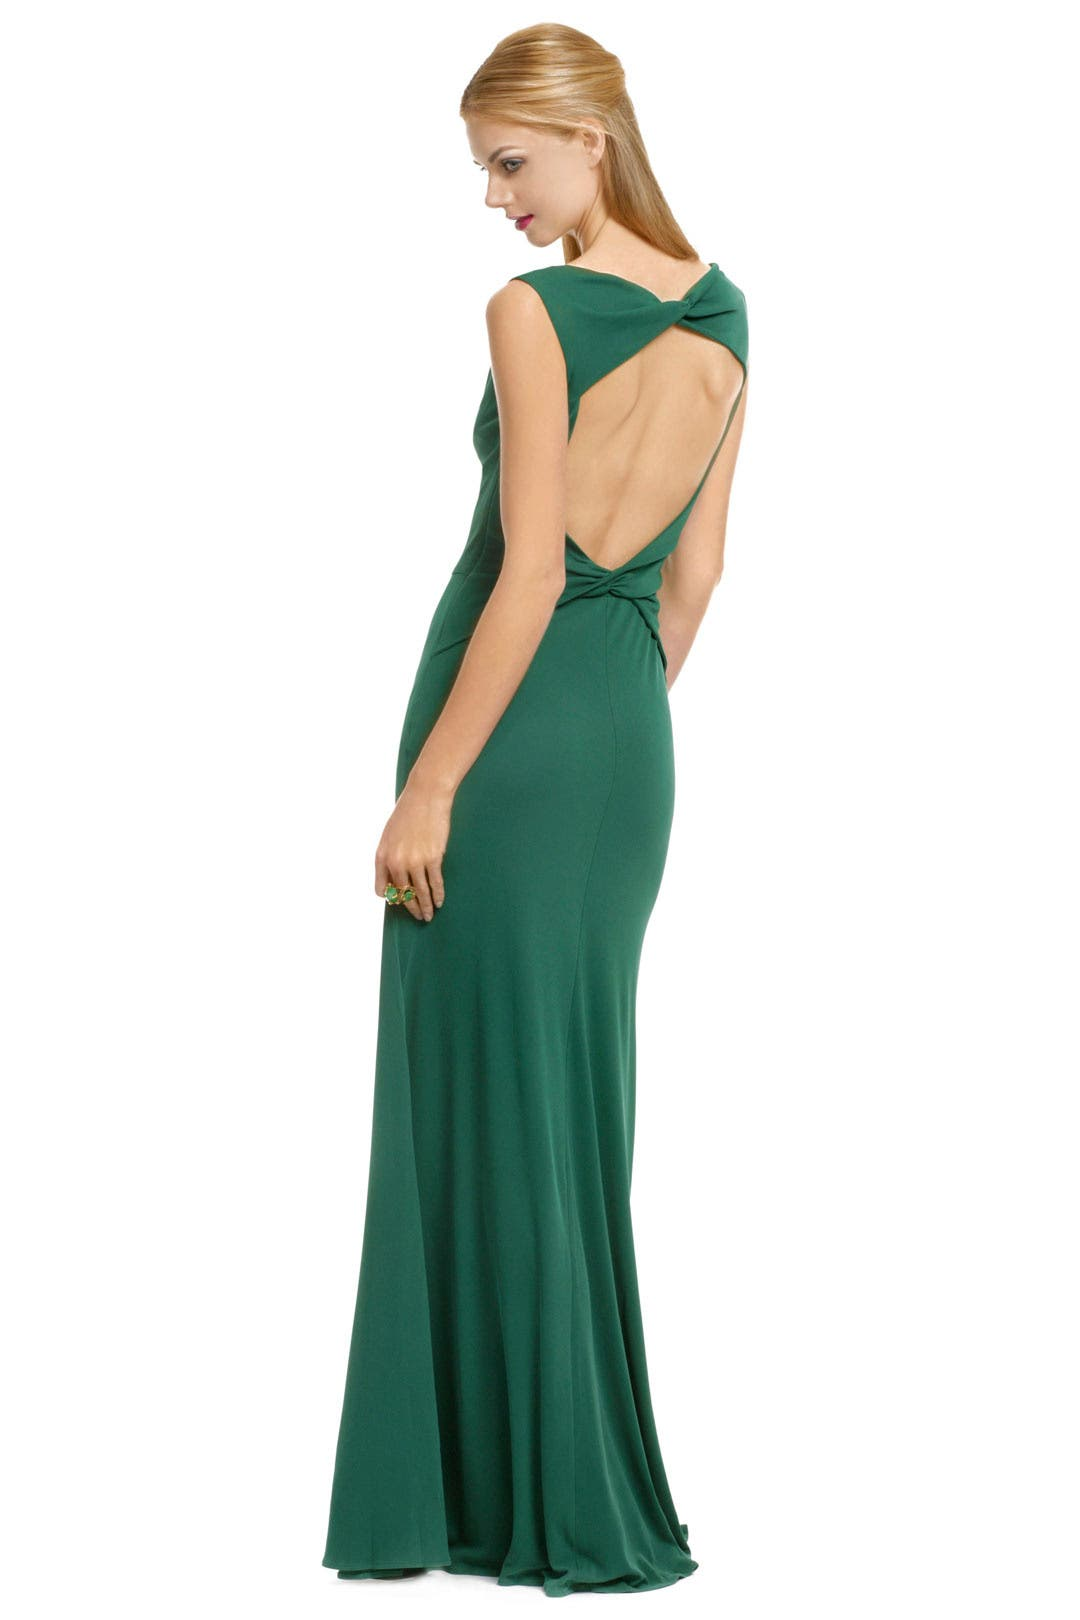 Great Britain Green Gown by Issa